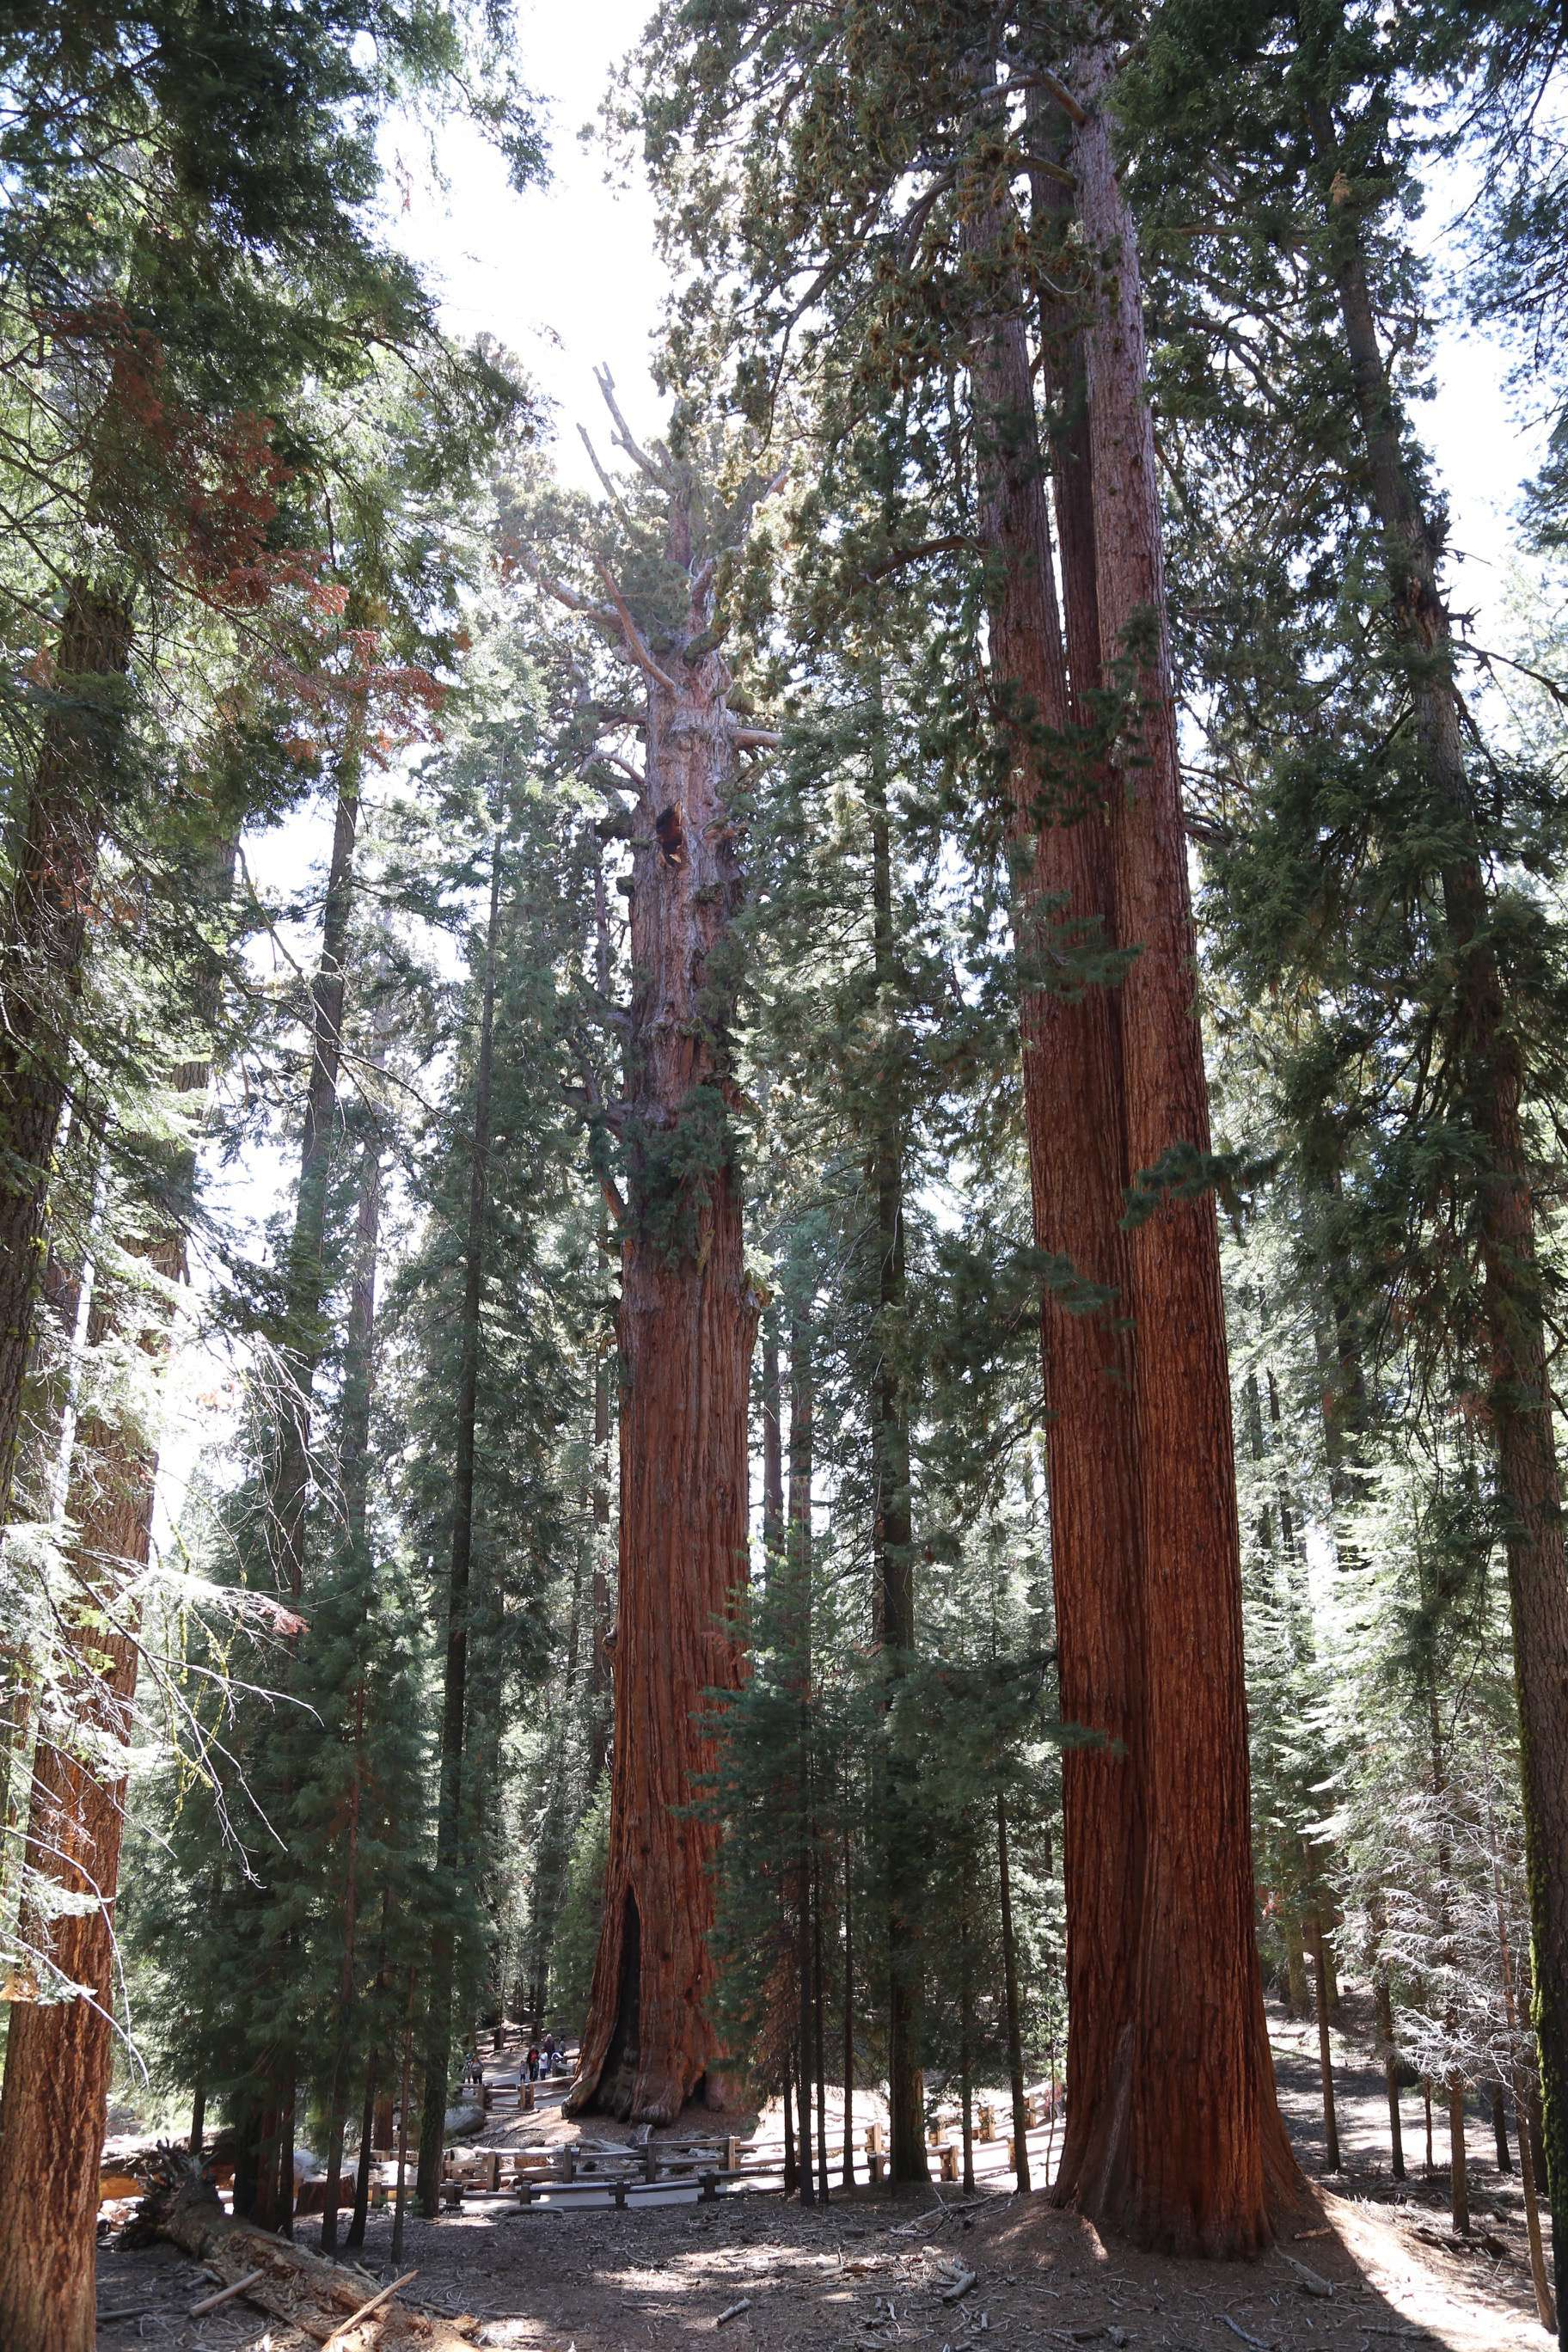 The pathways guide visitors through the groves and best viewing points without trampling to death the delicate roots the sequoias need to survive.